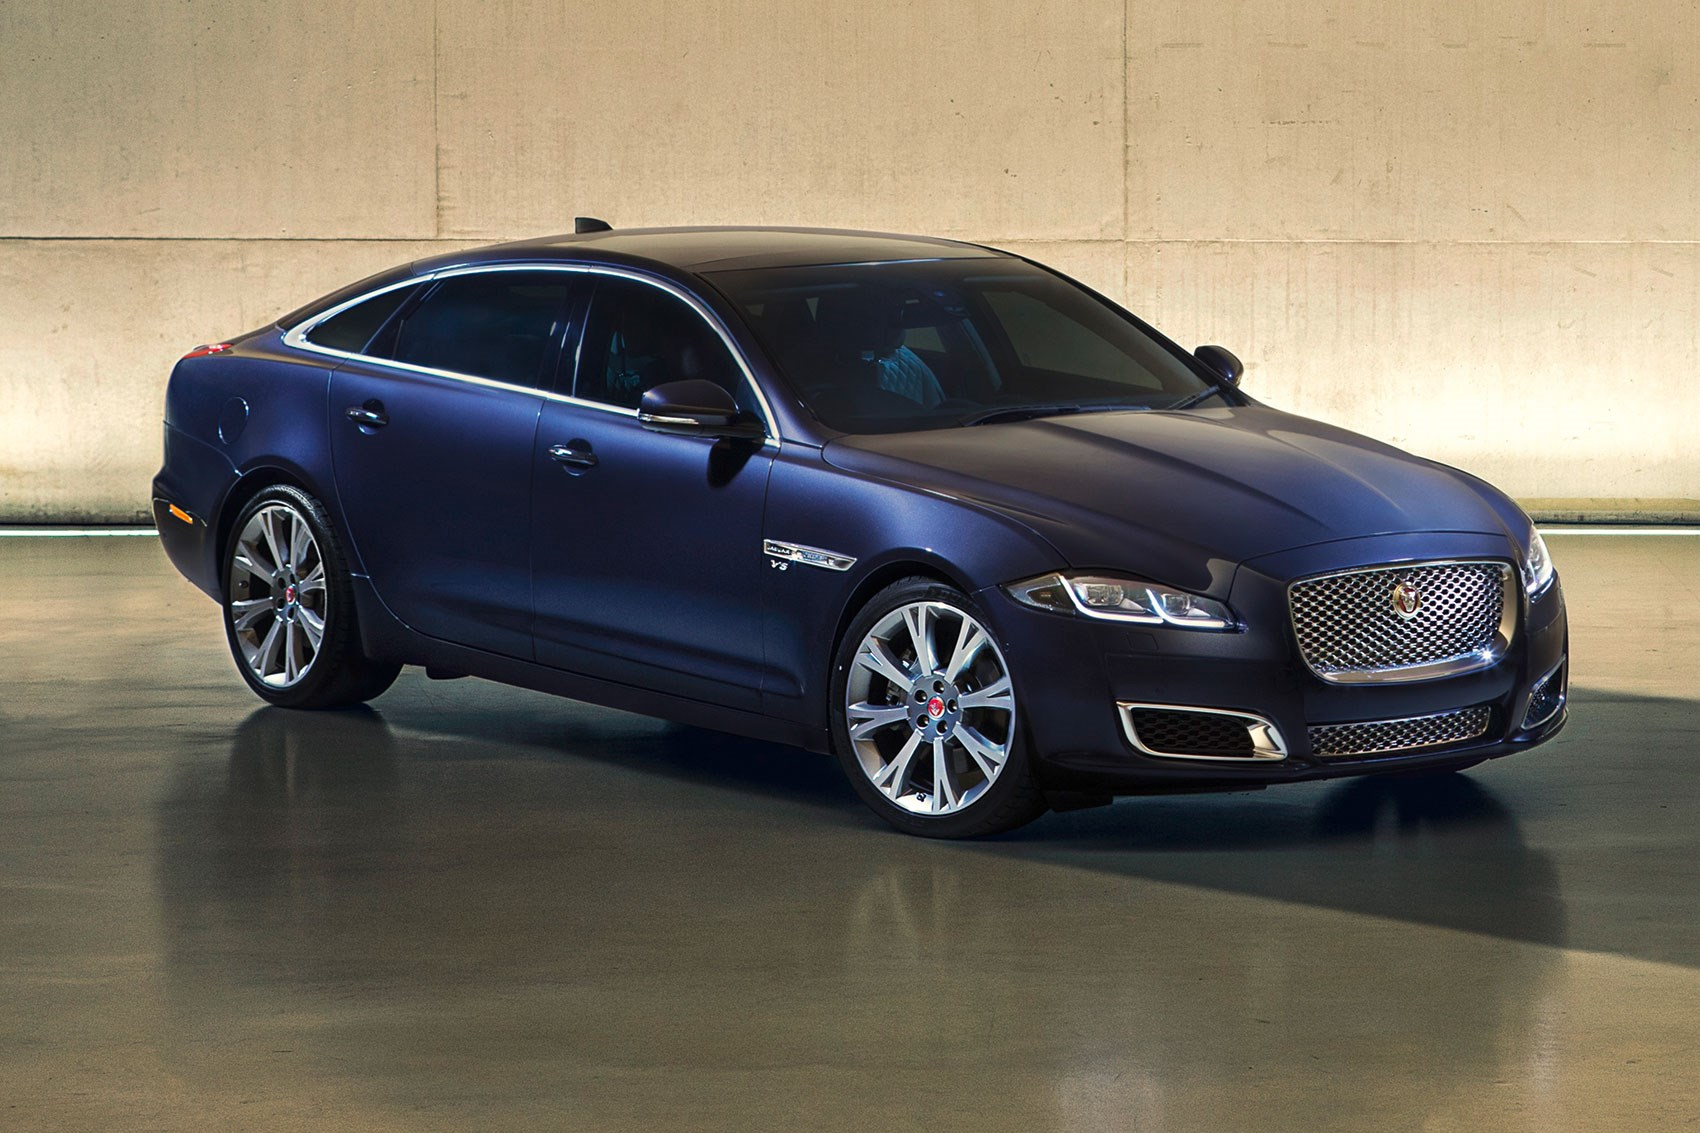 ian jaguar xj new is signed news all future off callum talks about the nearly xjl of price photos